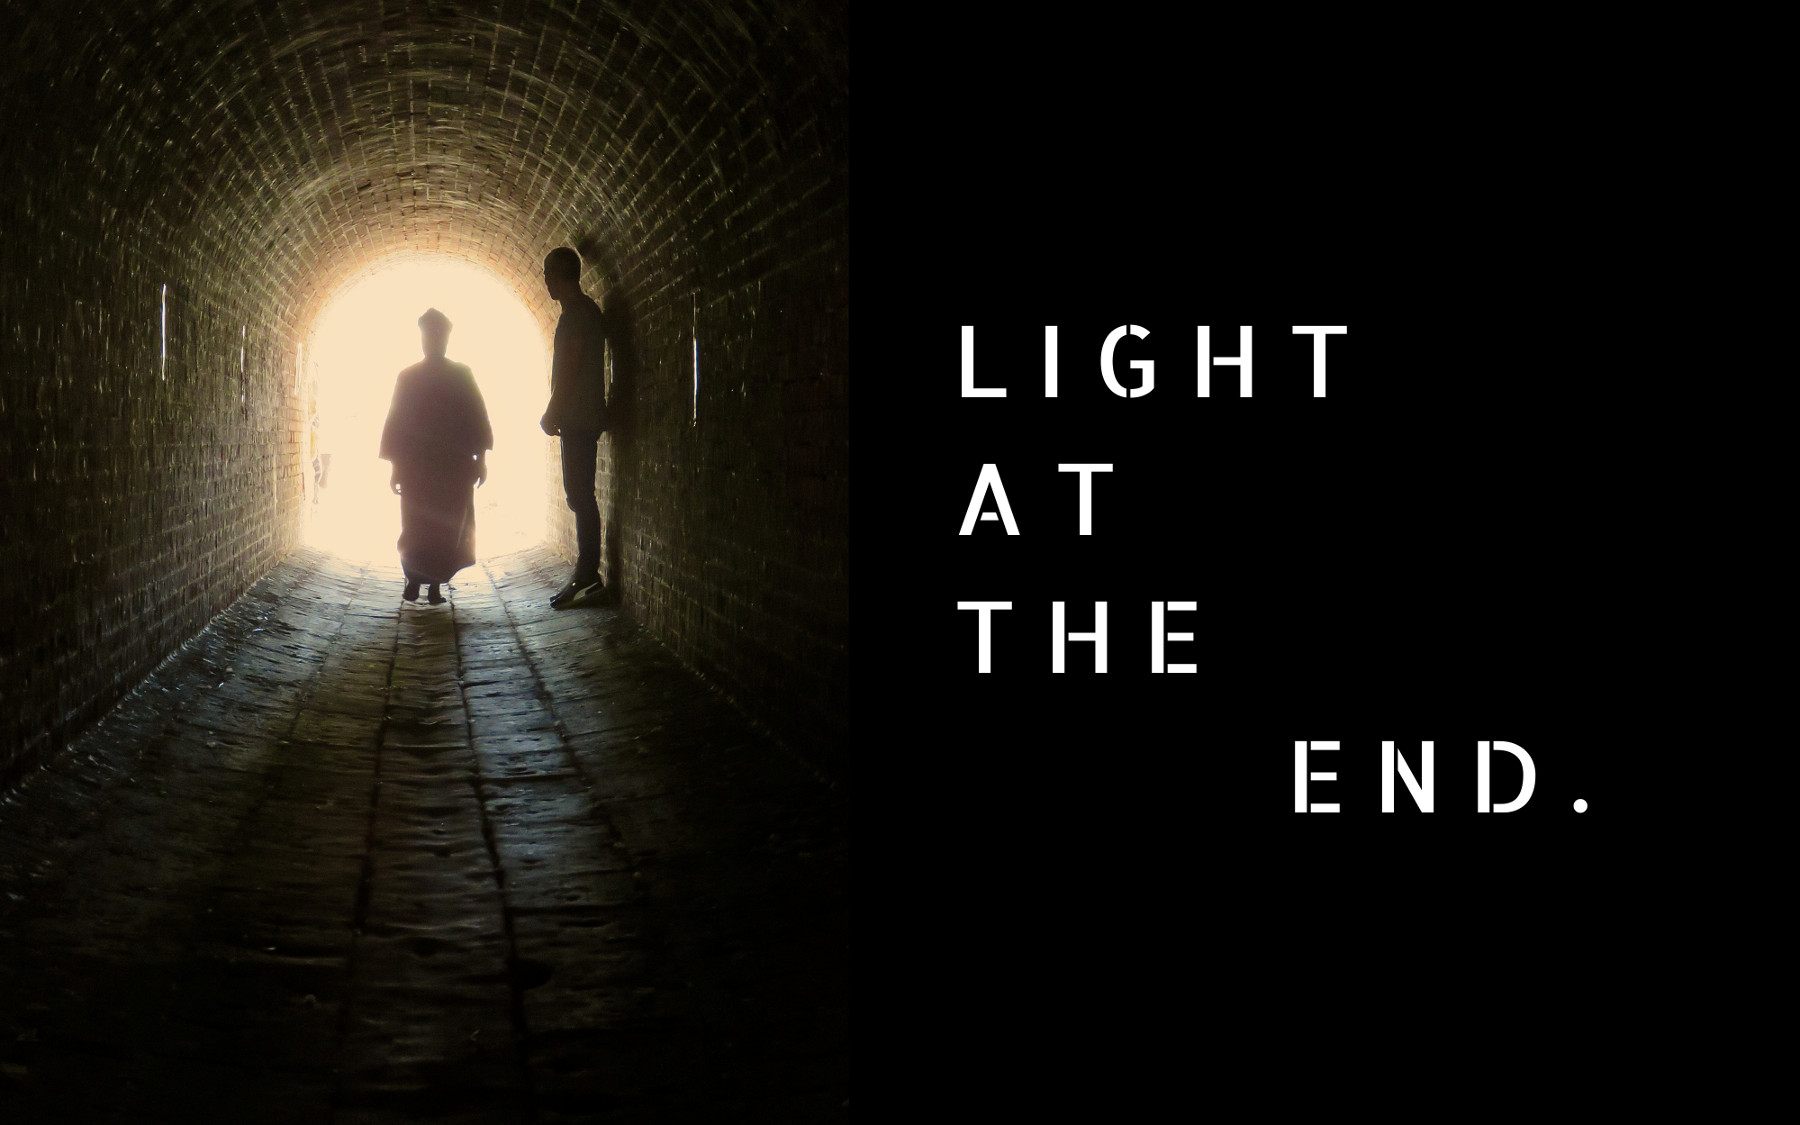 Light At The End...